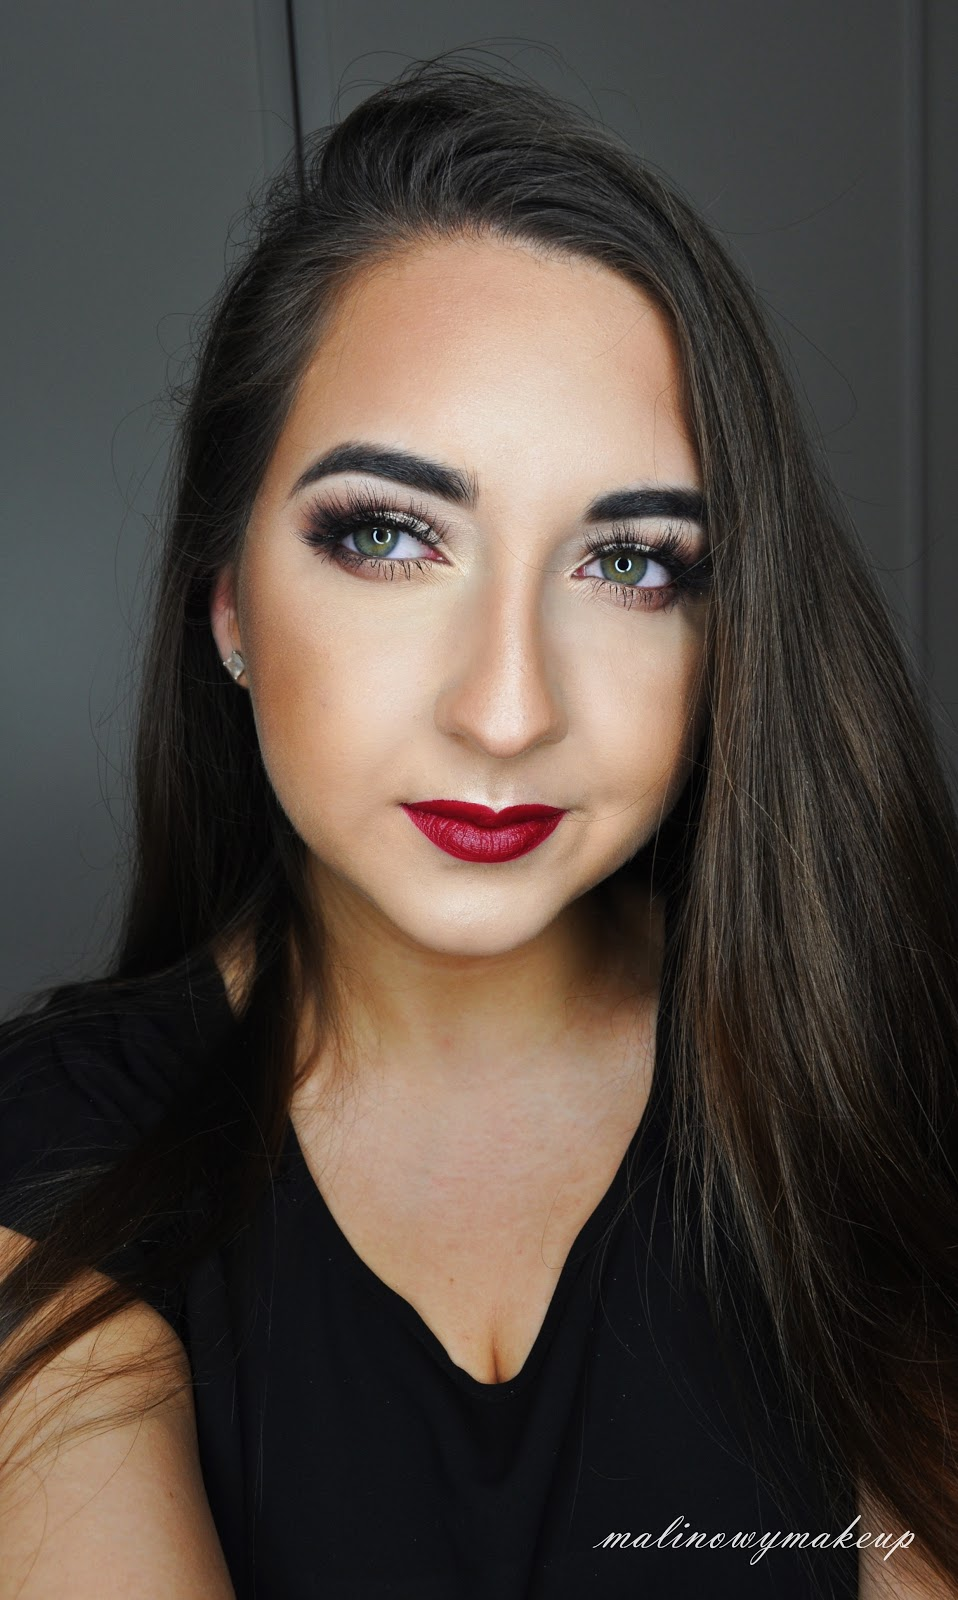 instagram glamurous makeup insta glam makeup red lips smoky eyes bordowe smoky isadora konturowanie